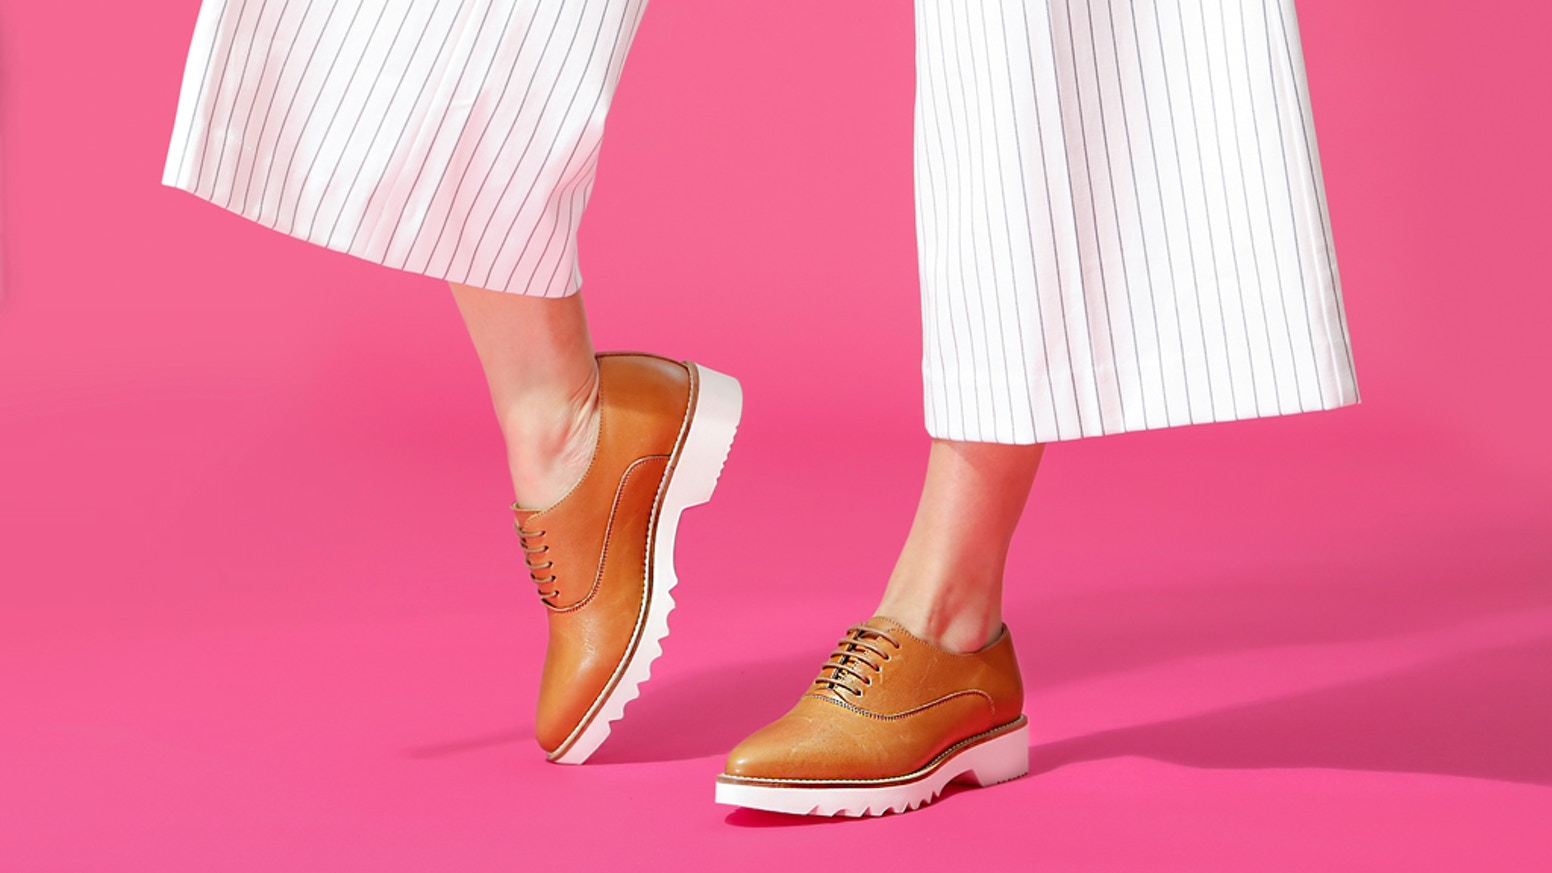 One of the Most Successful Shoes on Kickstarter introduces its New & Colorful Women's Collection. Handmade in Italy.